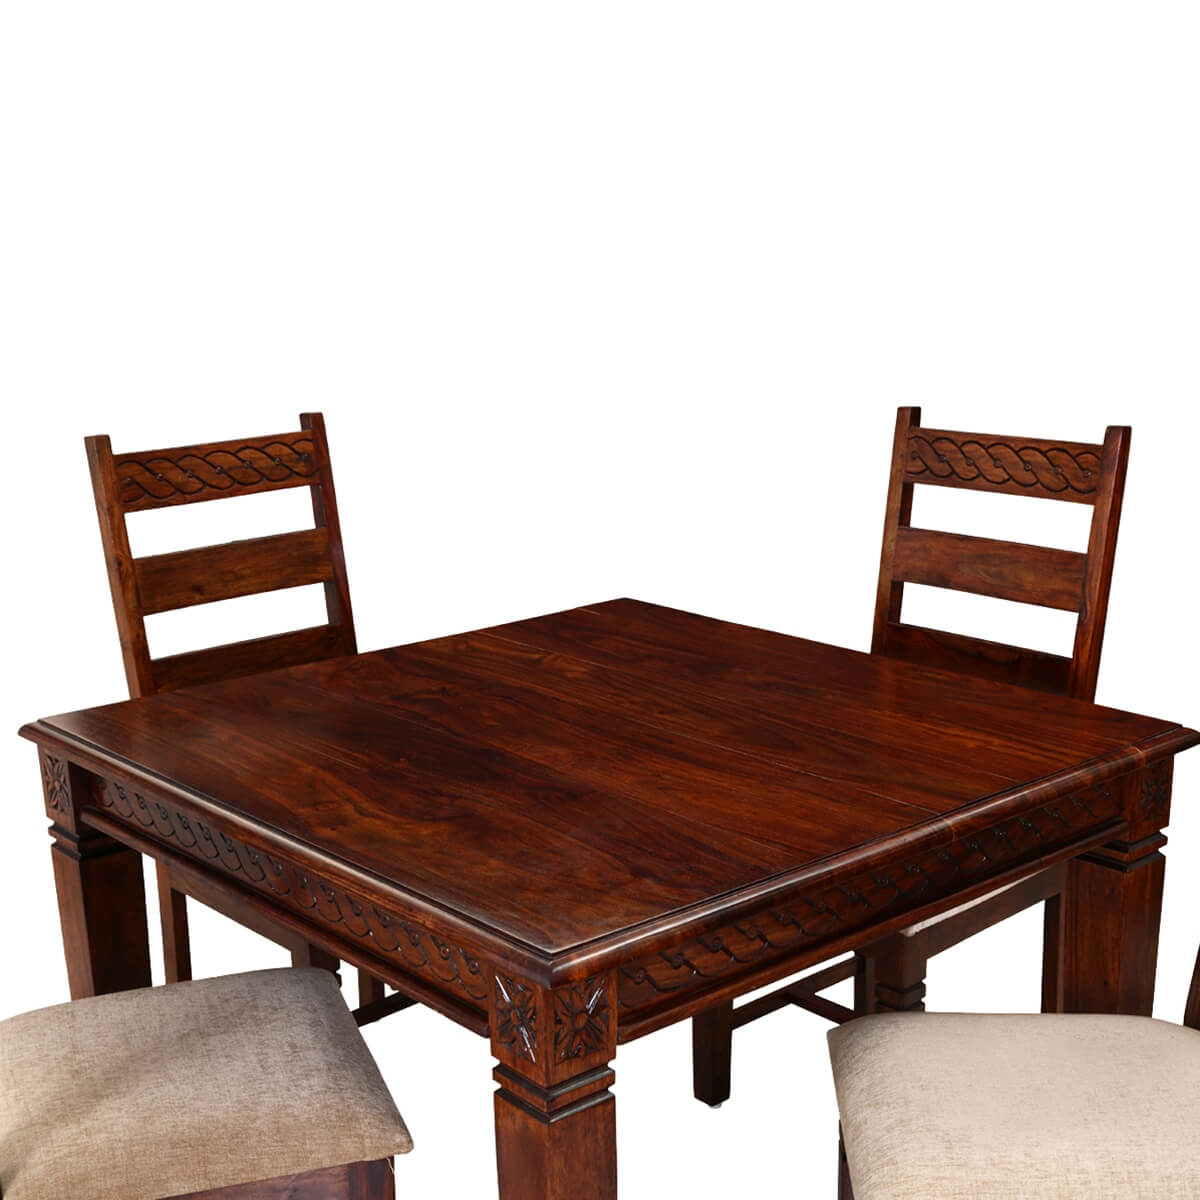 Wooden Dining Table And Chairs: Handcrafted Solid Wood 5pc Square Dining Table And Chair Set